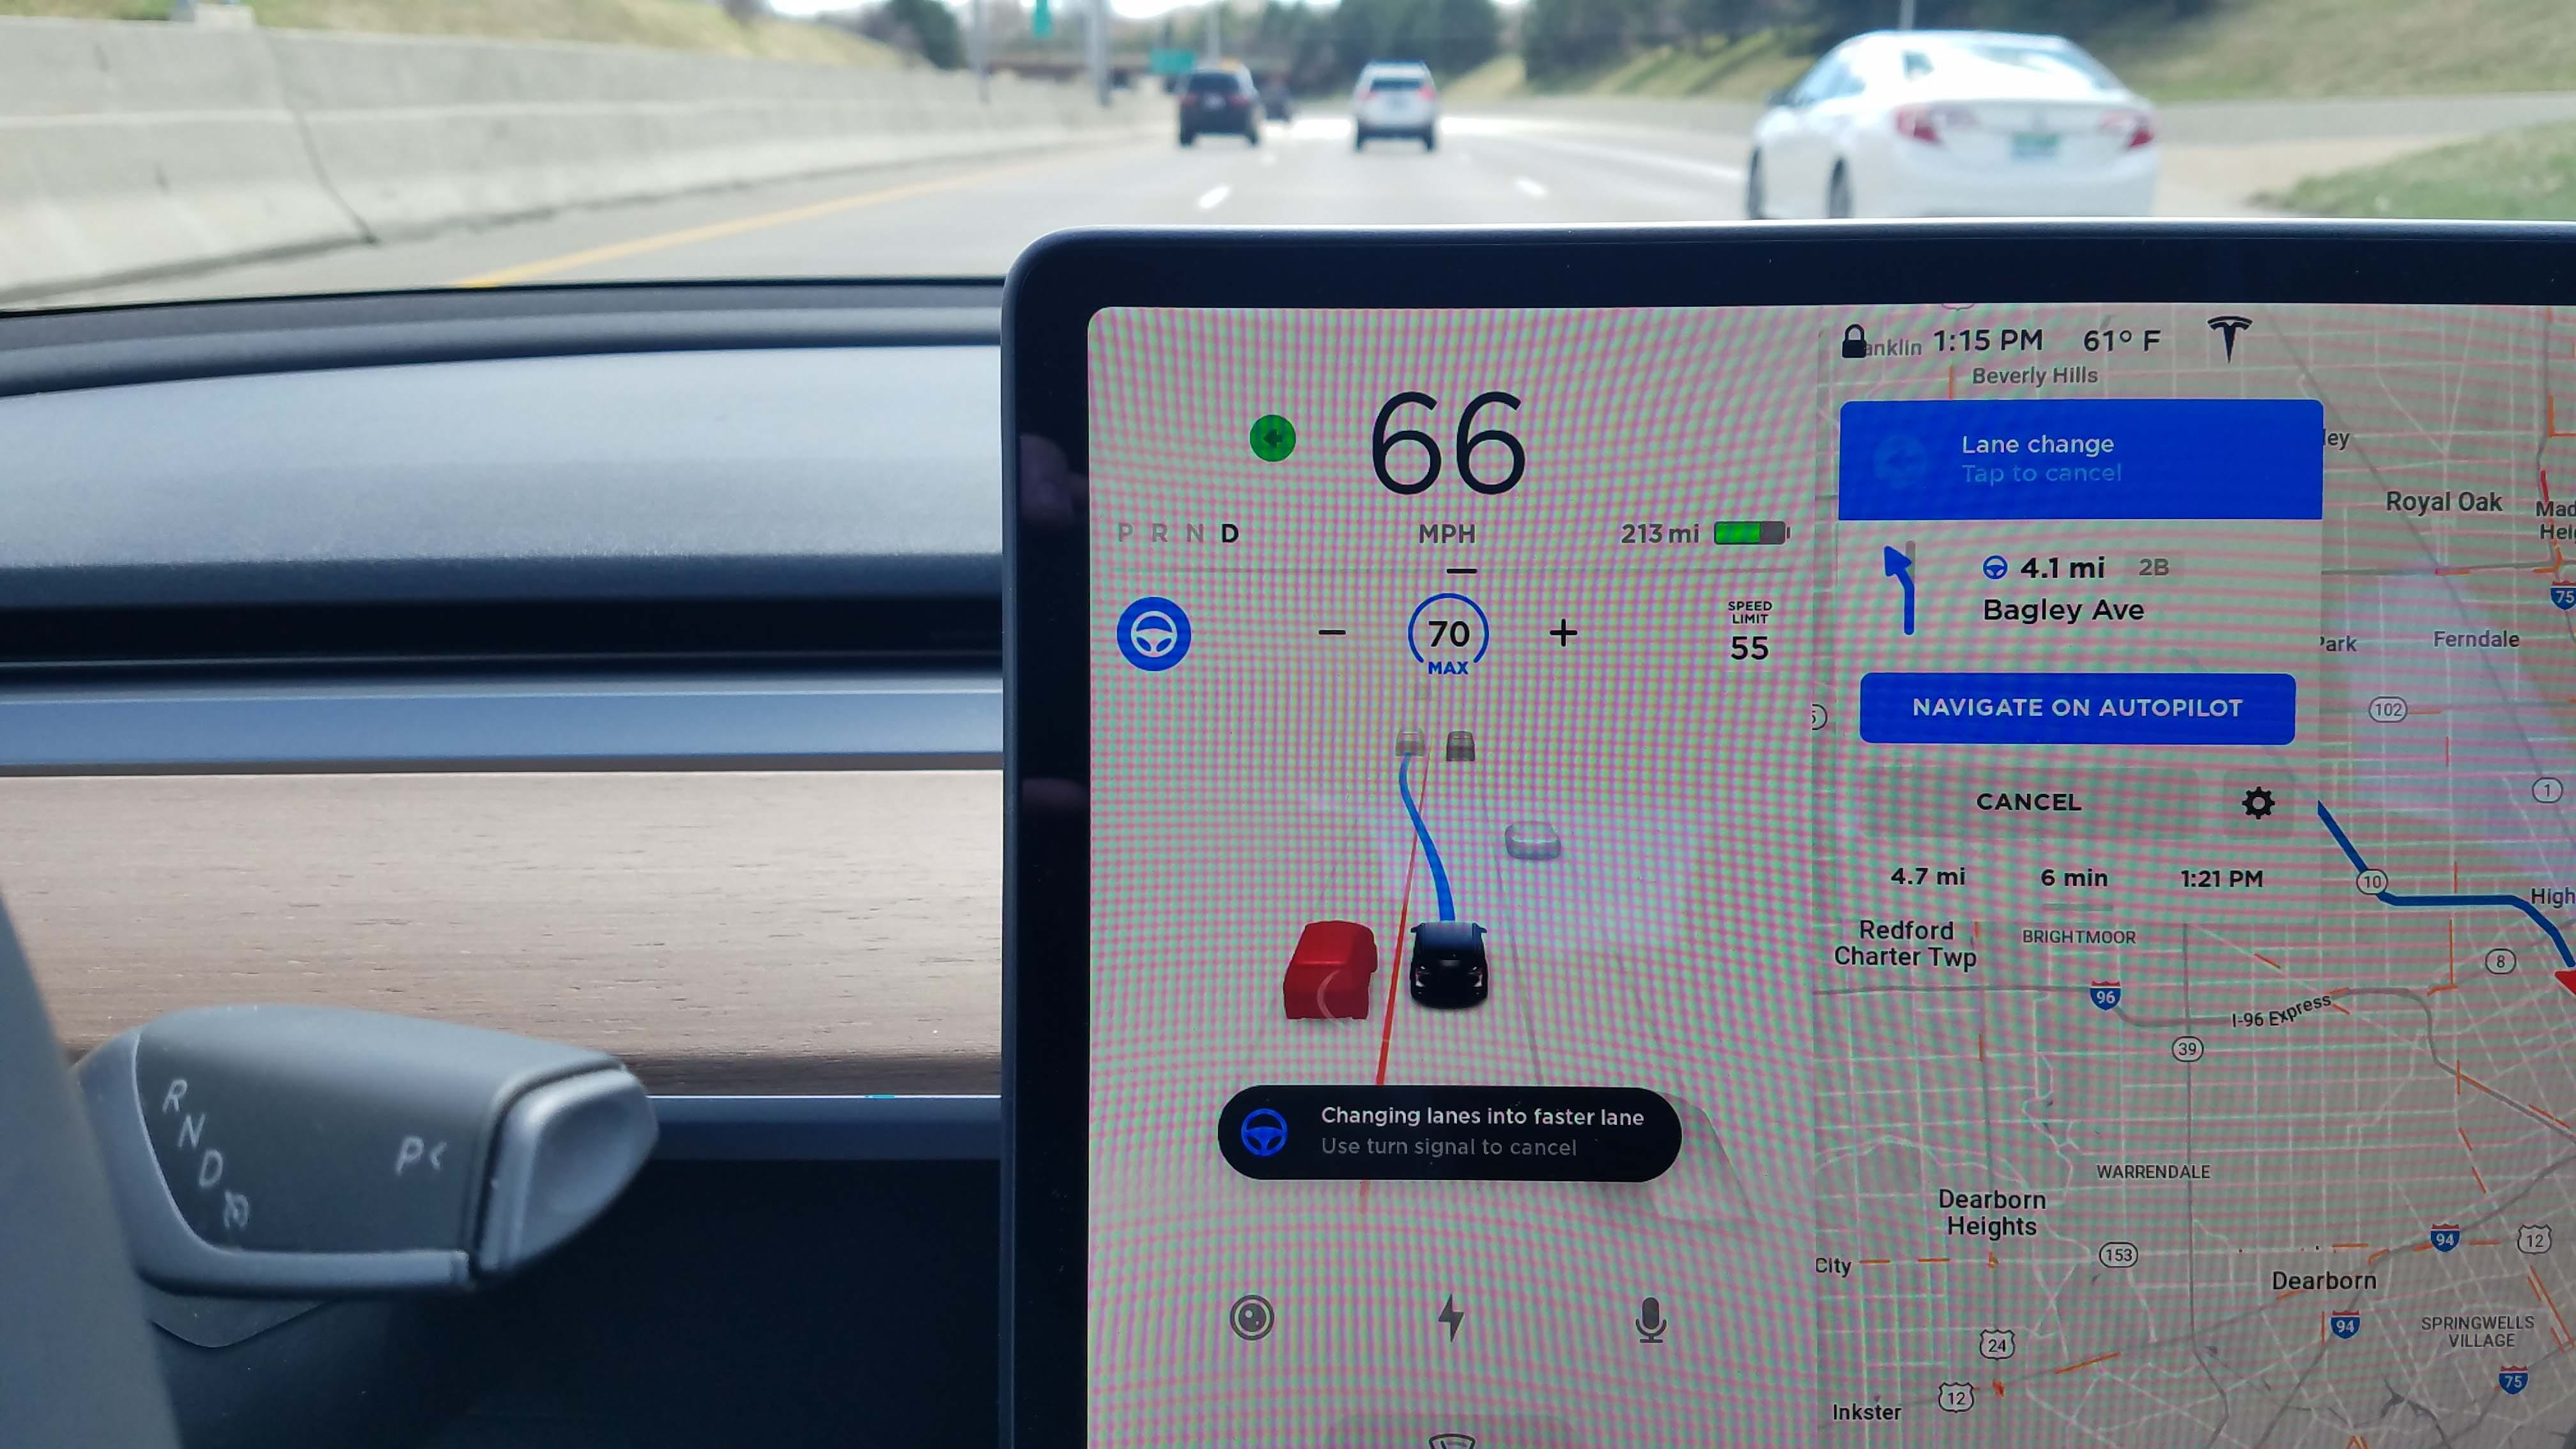 Payne: Tesla touts fully self-driving cars by '20; but I'm skeptical